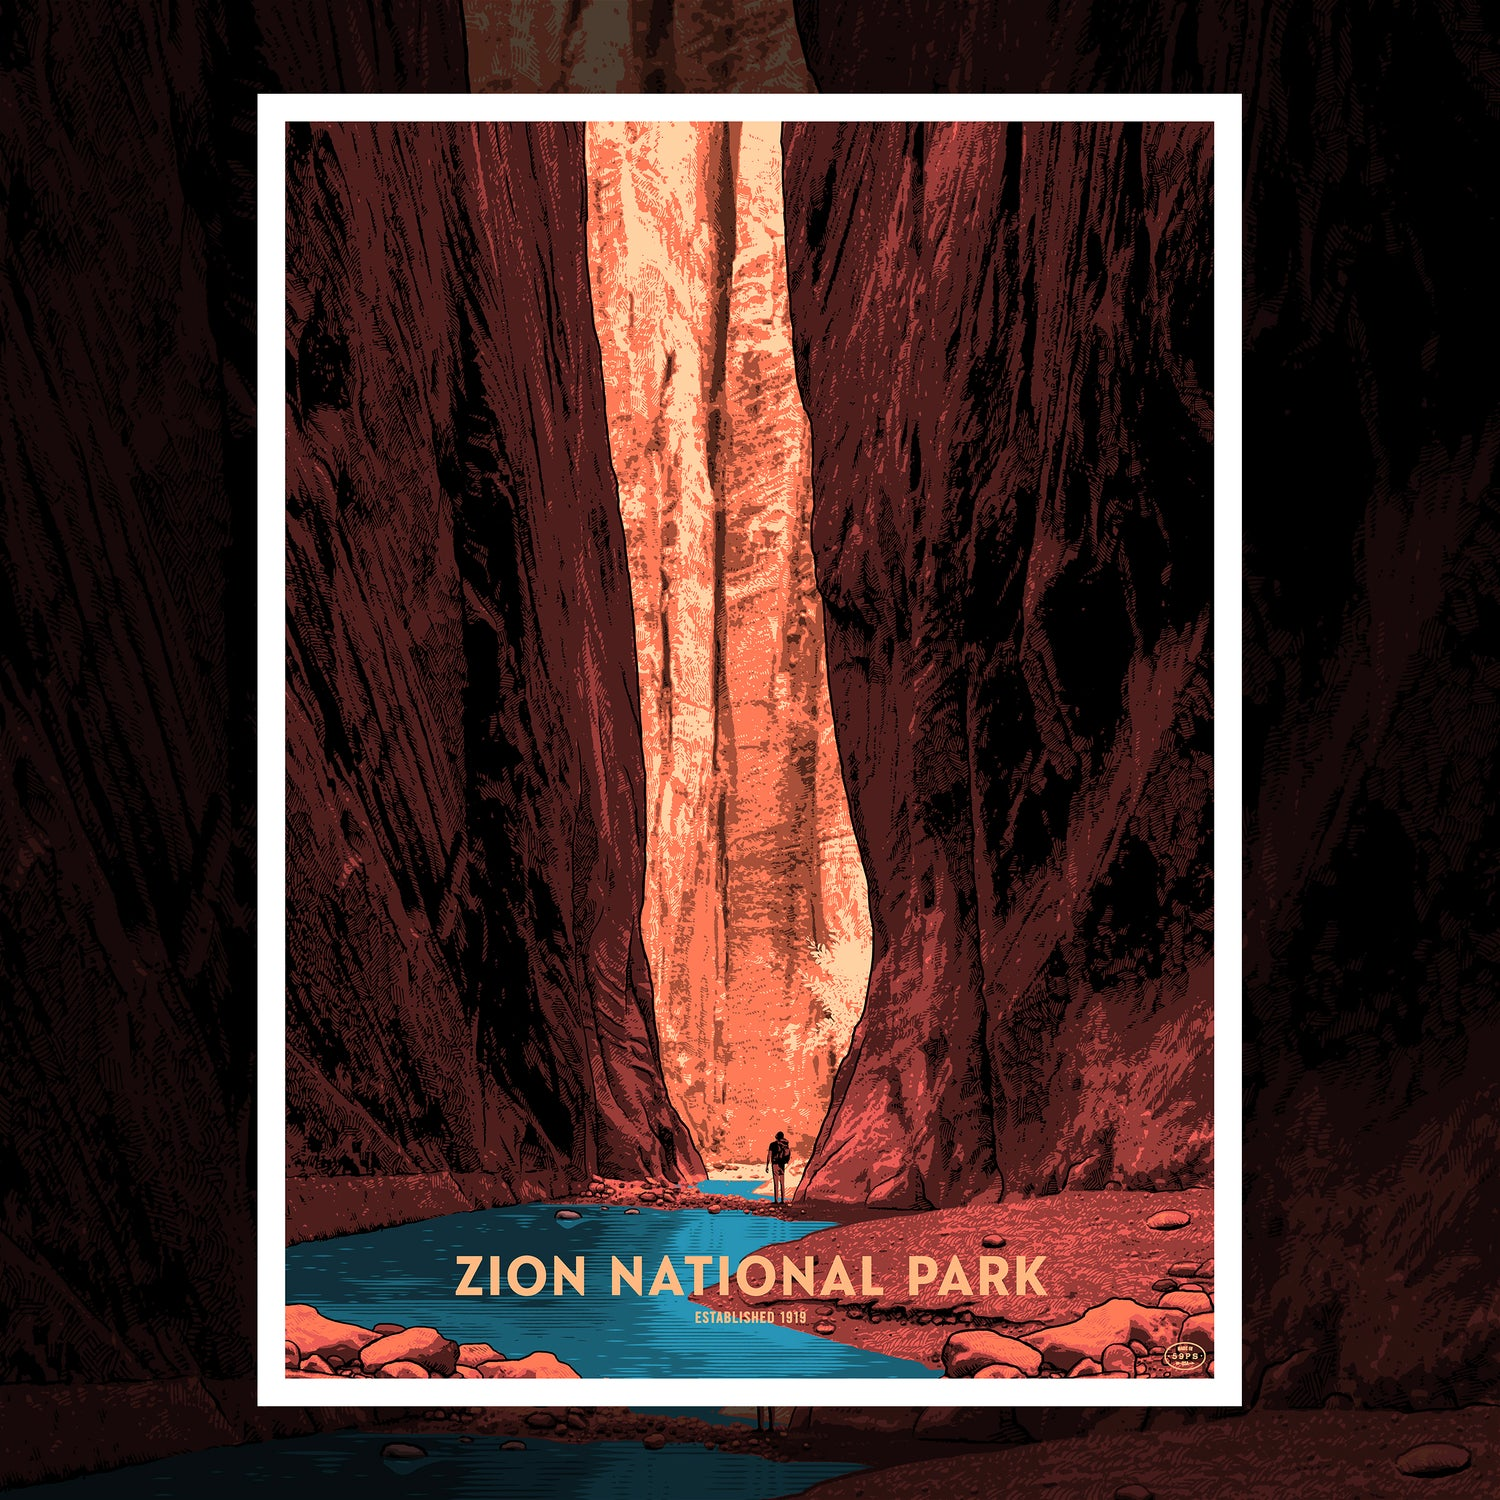 Image of (1 left) ZION NATIONAL PARK - THE NARROWS